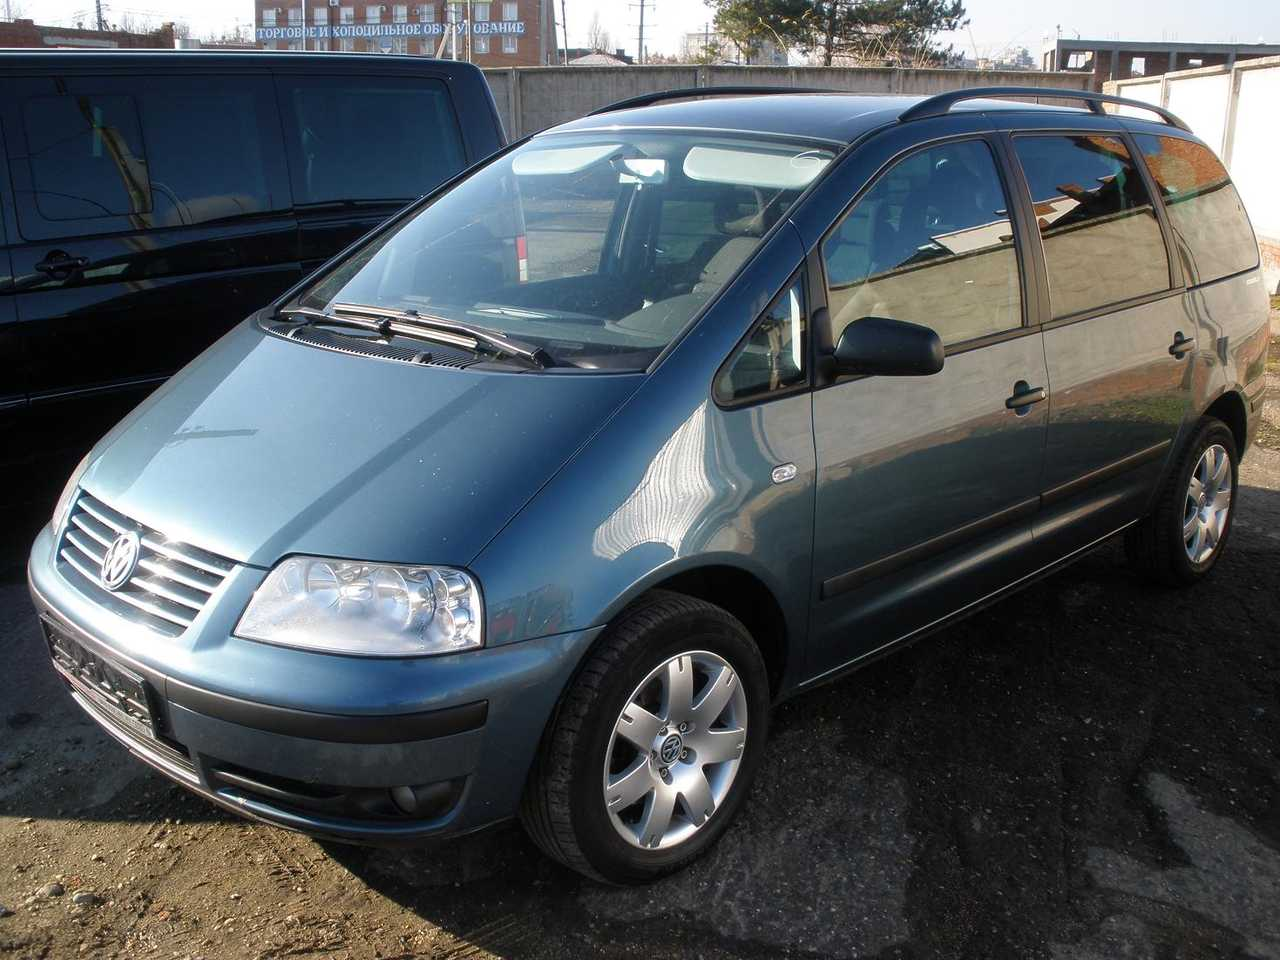 2003 Volkswagen Sharan Specs  Mpg  Towing Capacity  Size  Photos